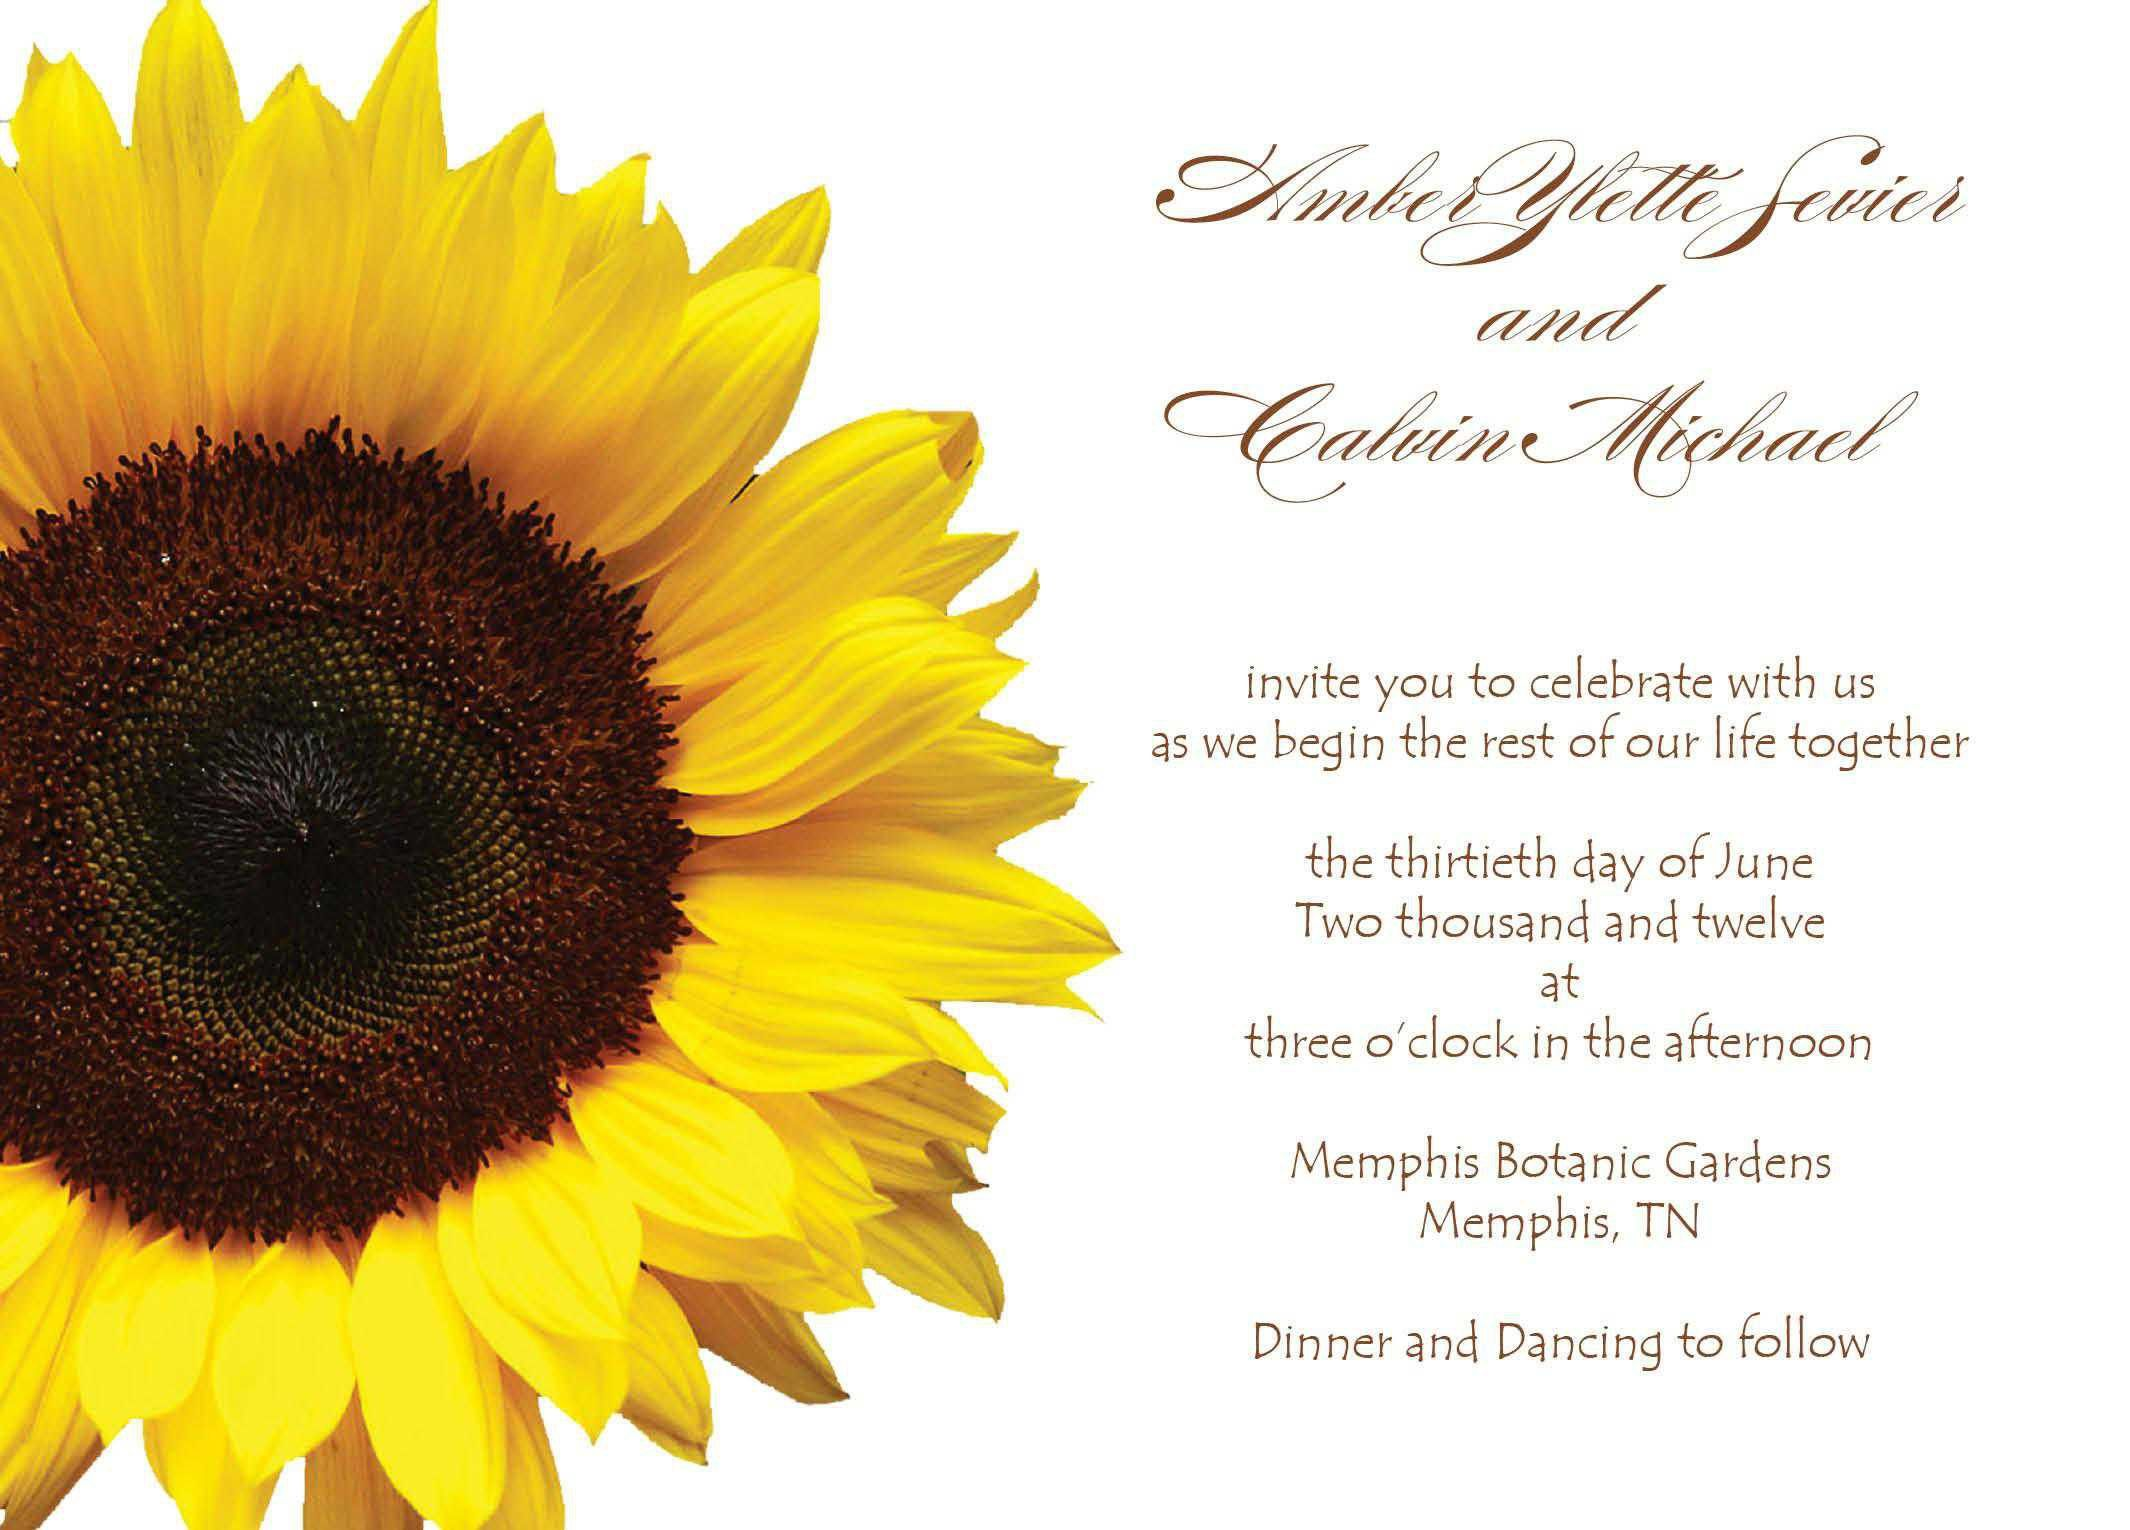 Wedding Invitation Wedding Invitations Templates Invitations - Sunflower wedding invitations templates